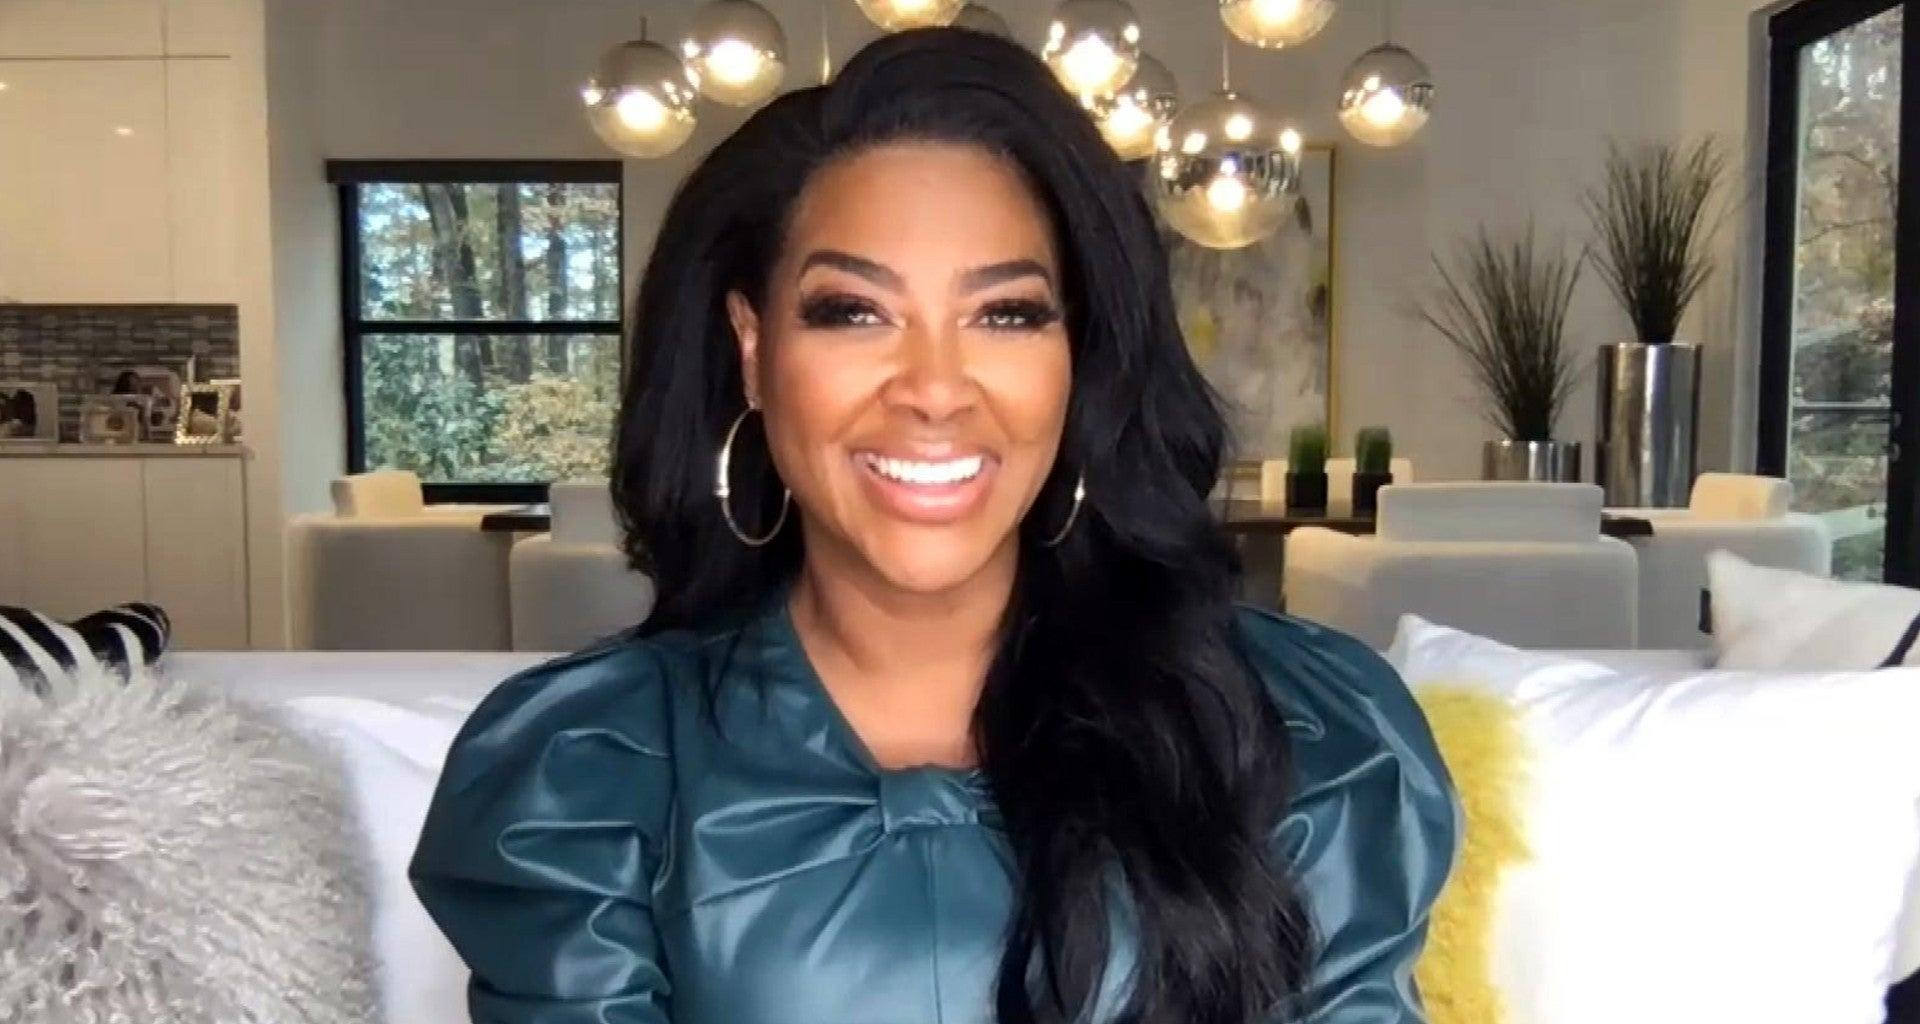 Kenya Moore Shares Her Weight Loss Secrets - Check Out Her Photo